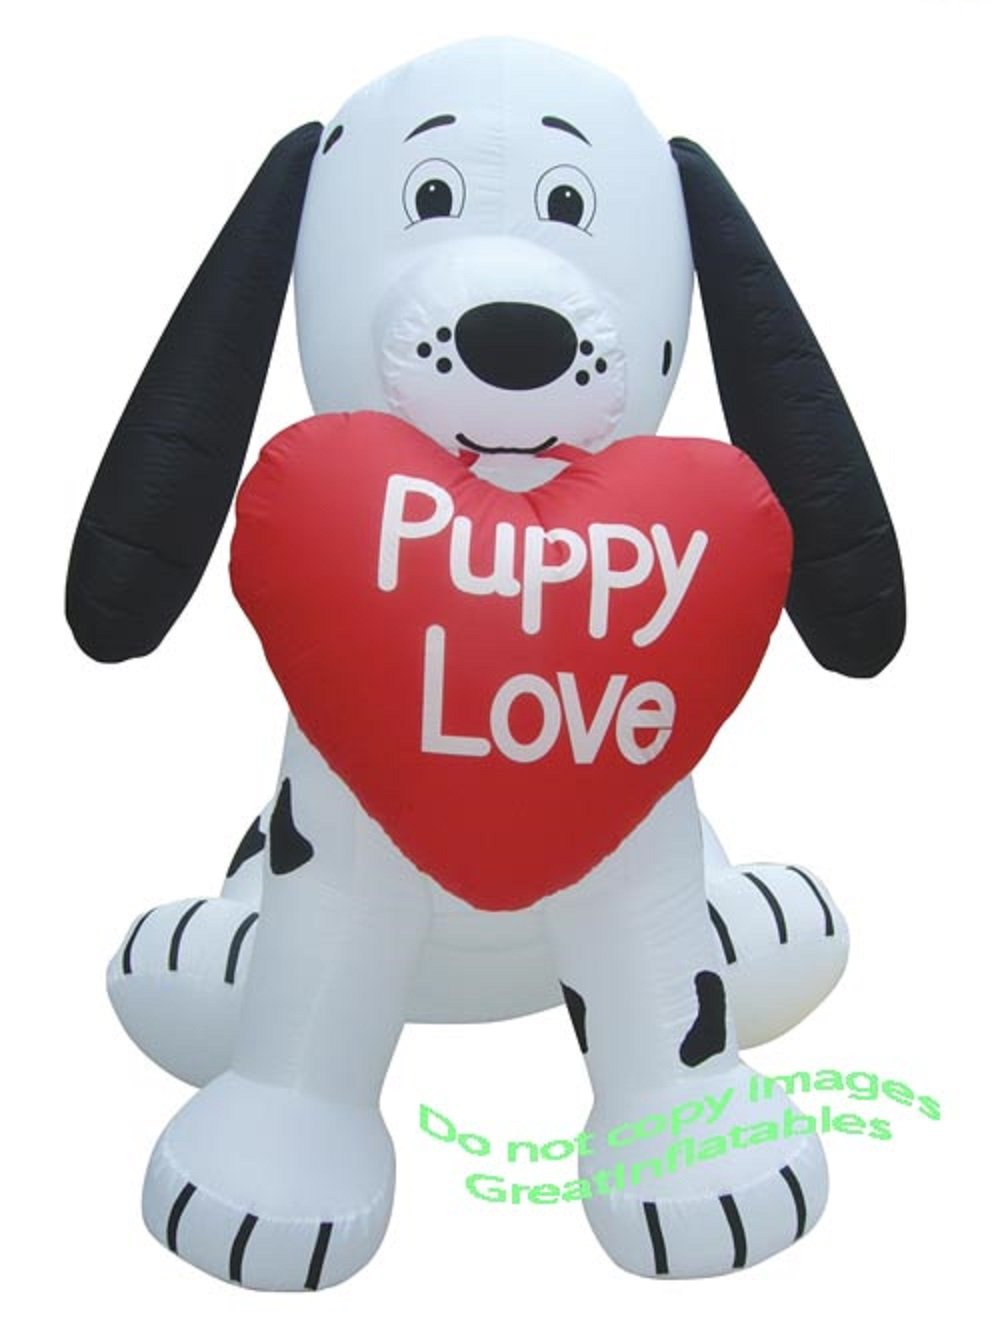 Gemmy Airblown Inflatable Valentine's Dalmatian Puppy Holding a Heart that says Puppy Love - Valentines Decoration, 7-foot Tall